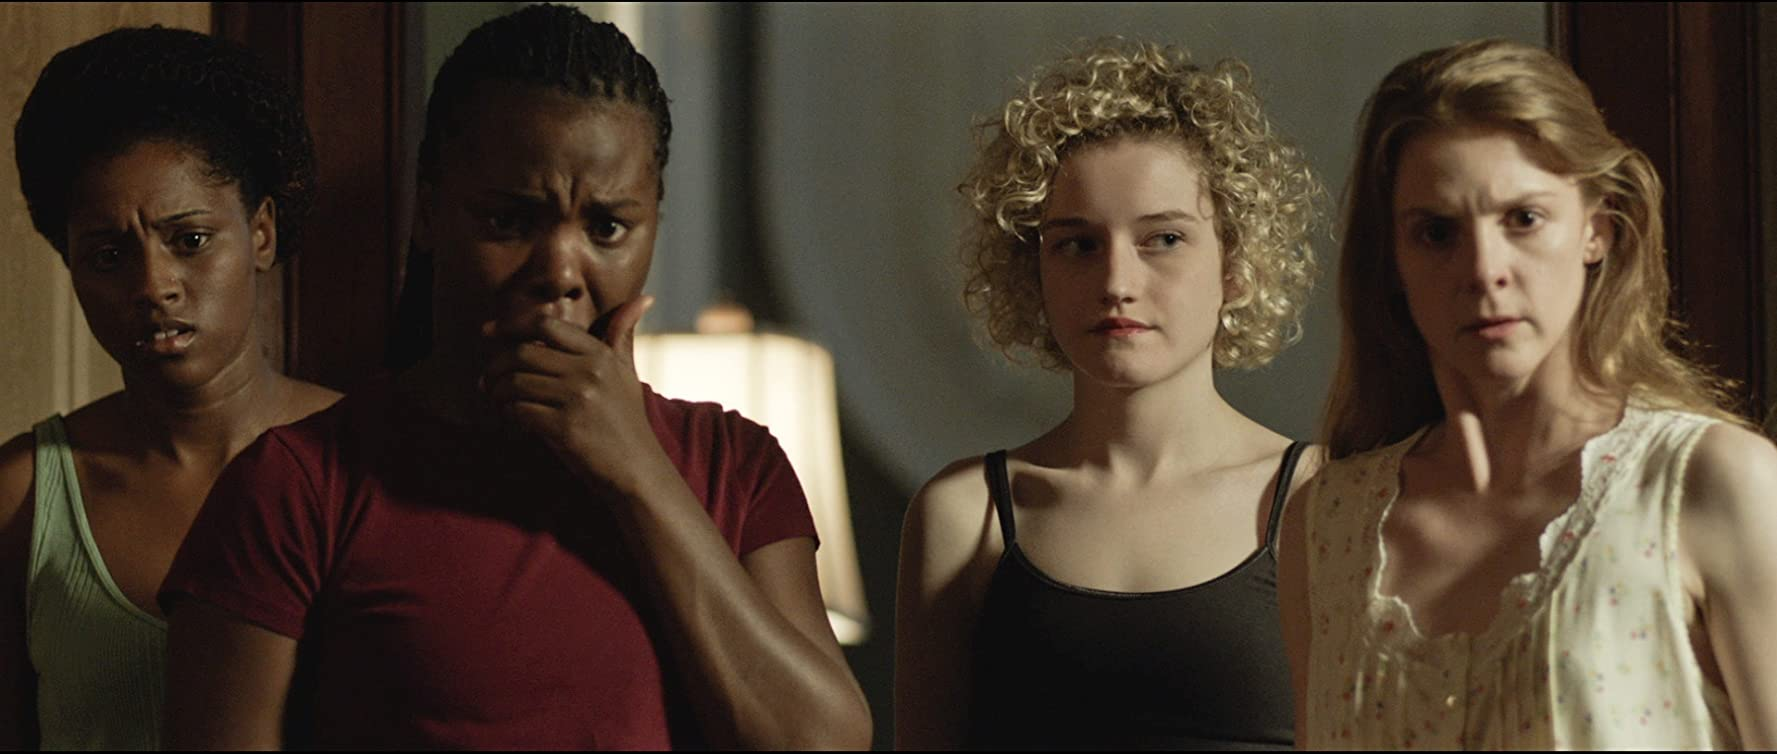 Ashley Bell, Julia Garner, Erica Michelle, and Sharice A. Williams in The Last Exorcism Part II (2013)